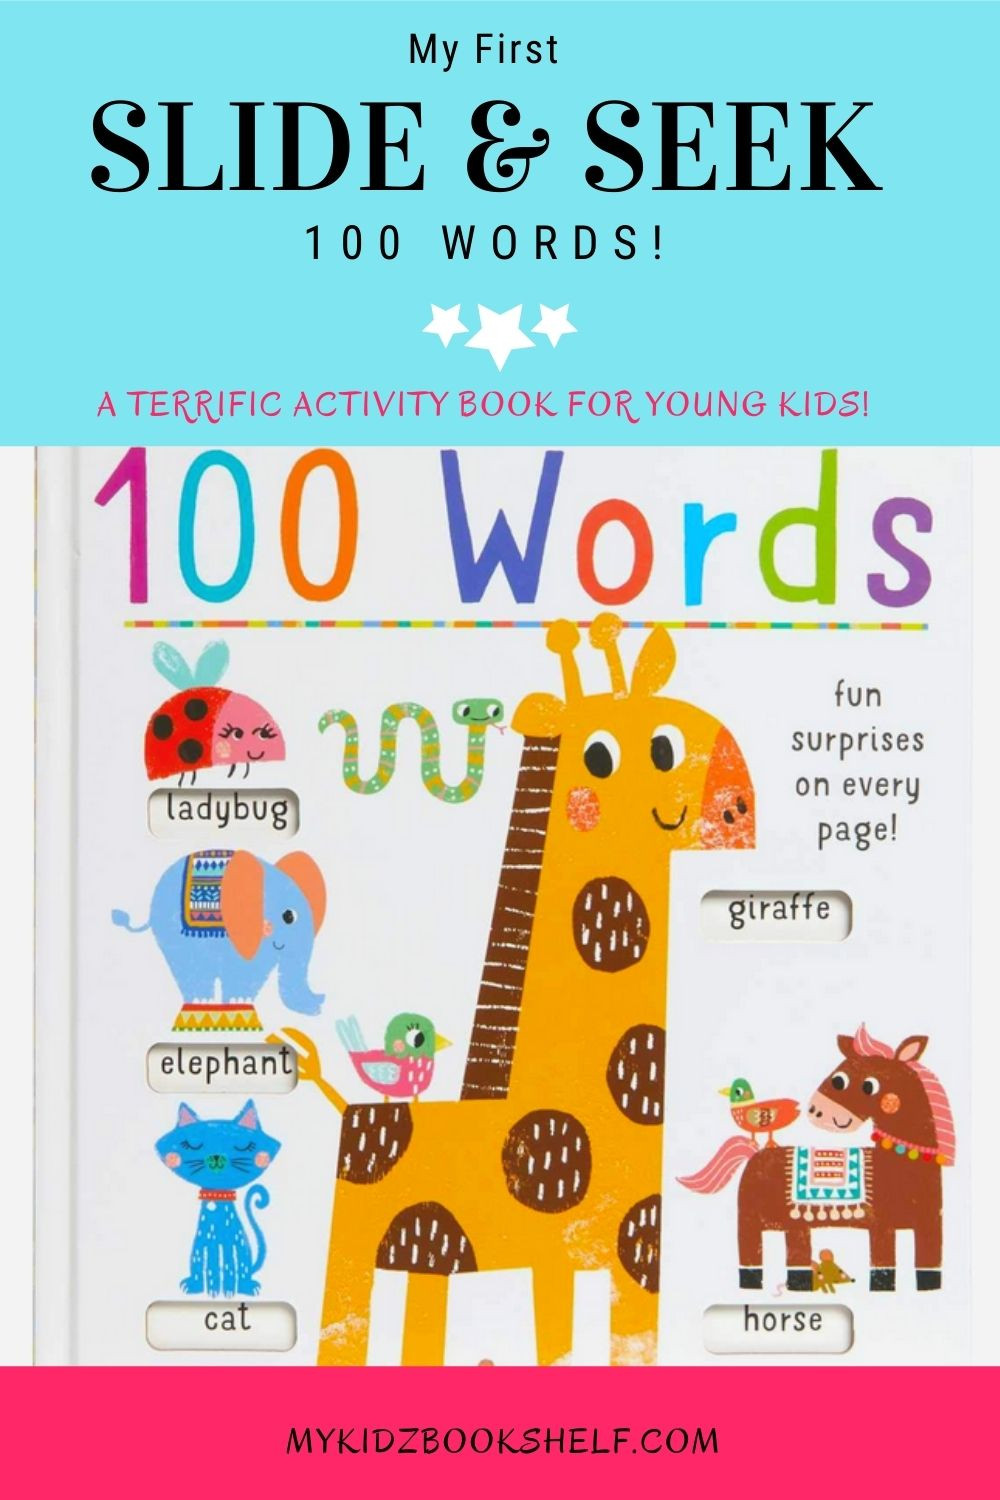 Slide and Seek 100 words book with giraffe on cover